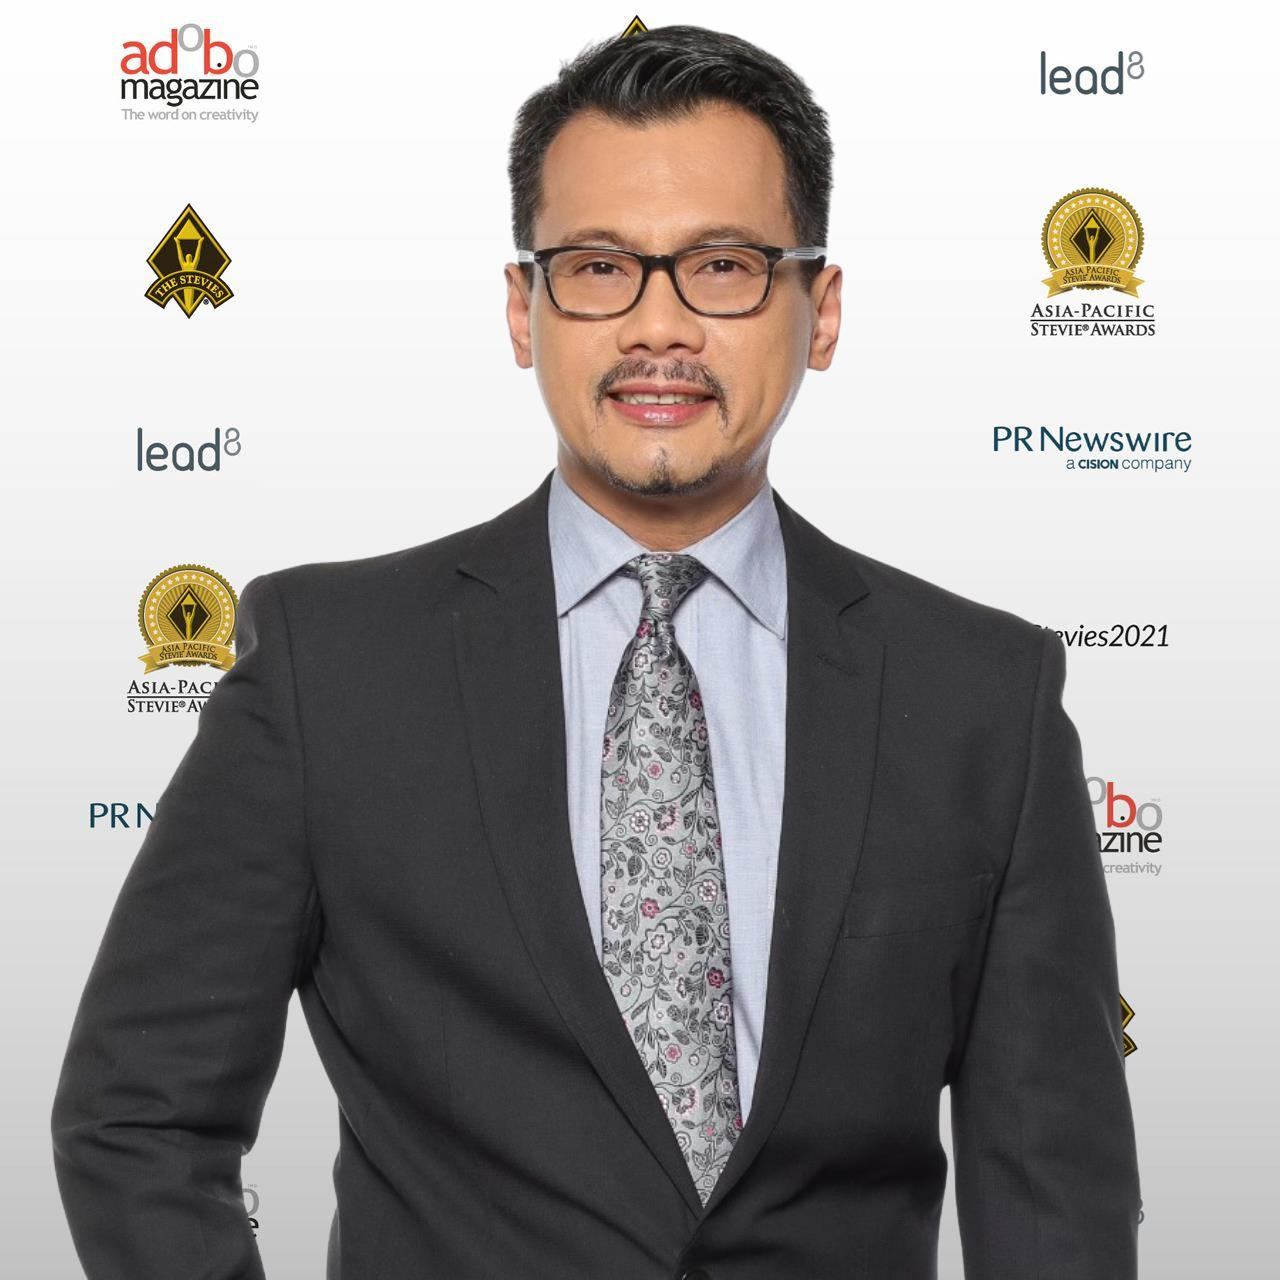 Pru Life UK's Cha-Ching receives Silver Stevie recognition at the 8th Annual Asia-Pacific Stevie Awards